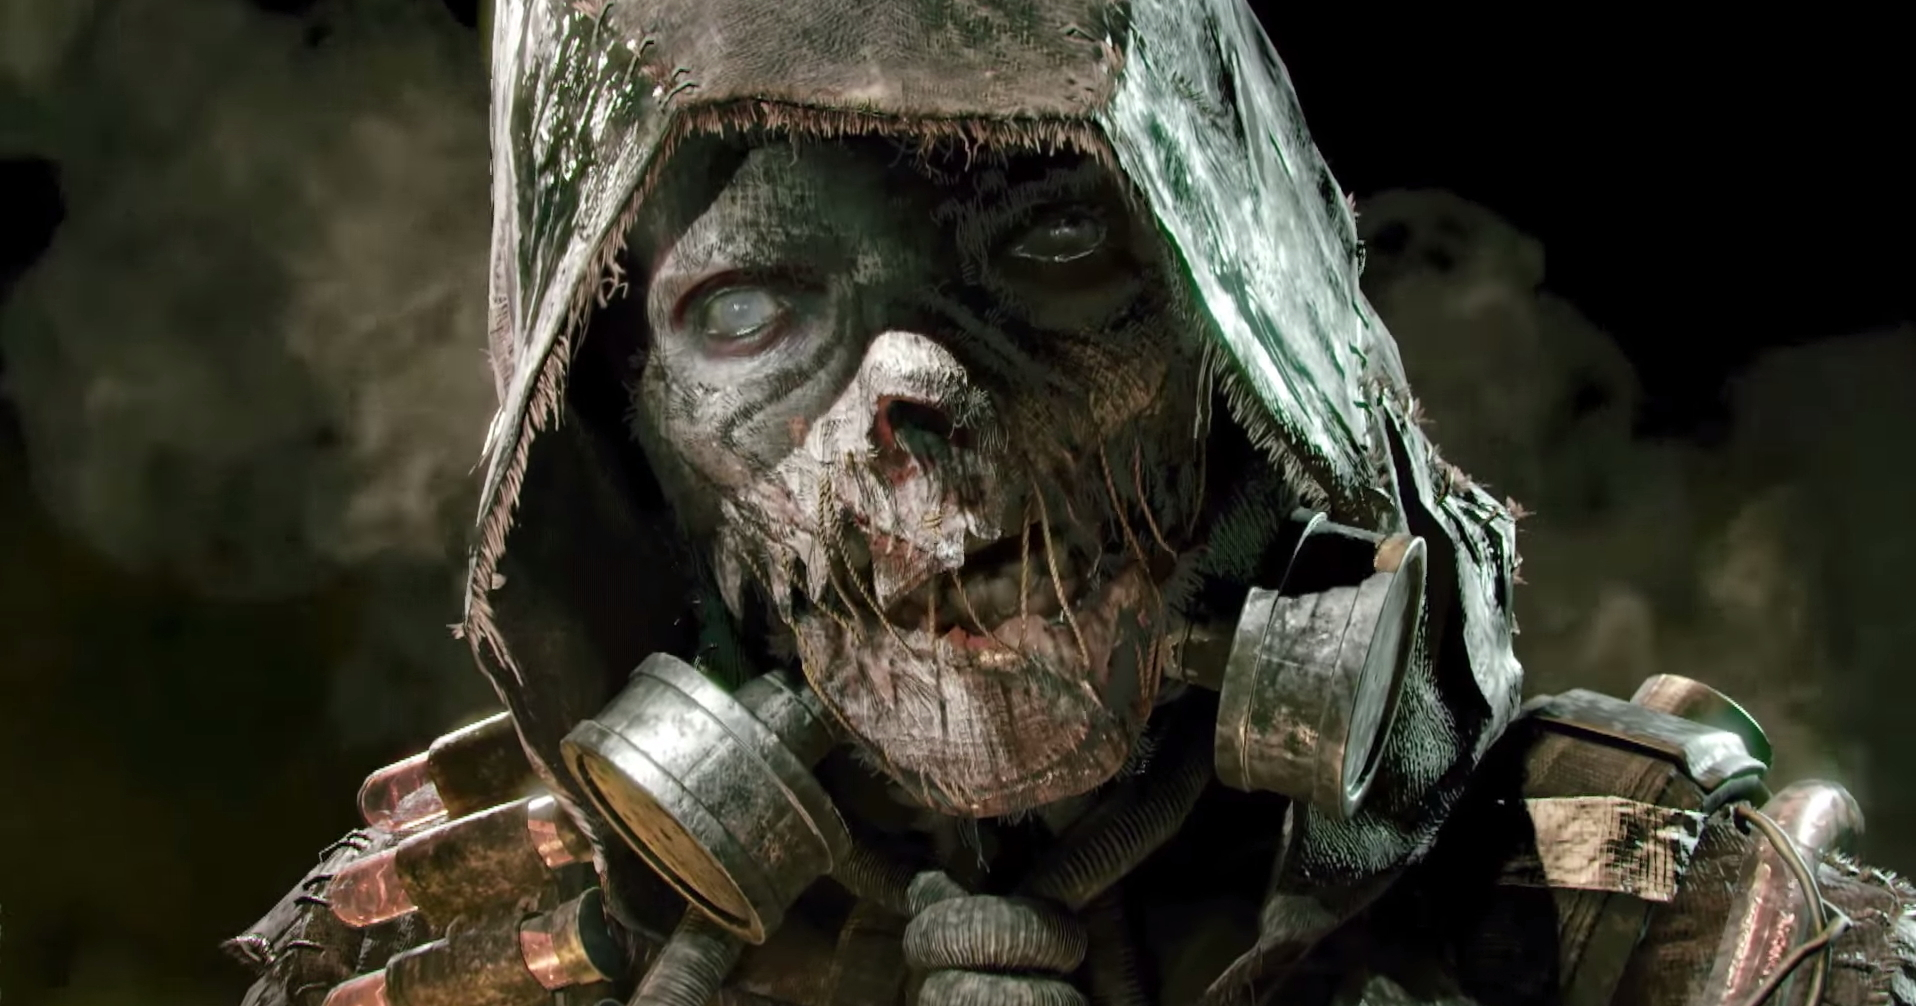 Returning to end the Dark Knight once and for all, the Scarecrow appears in the game in one of his most gruesome and horrifying guises yet, in any medium we've seen him in.